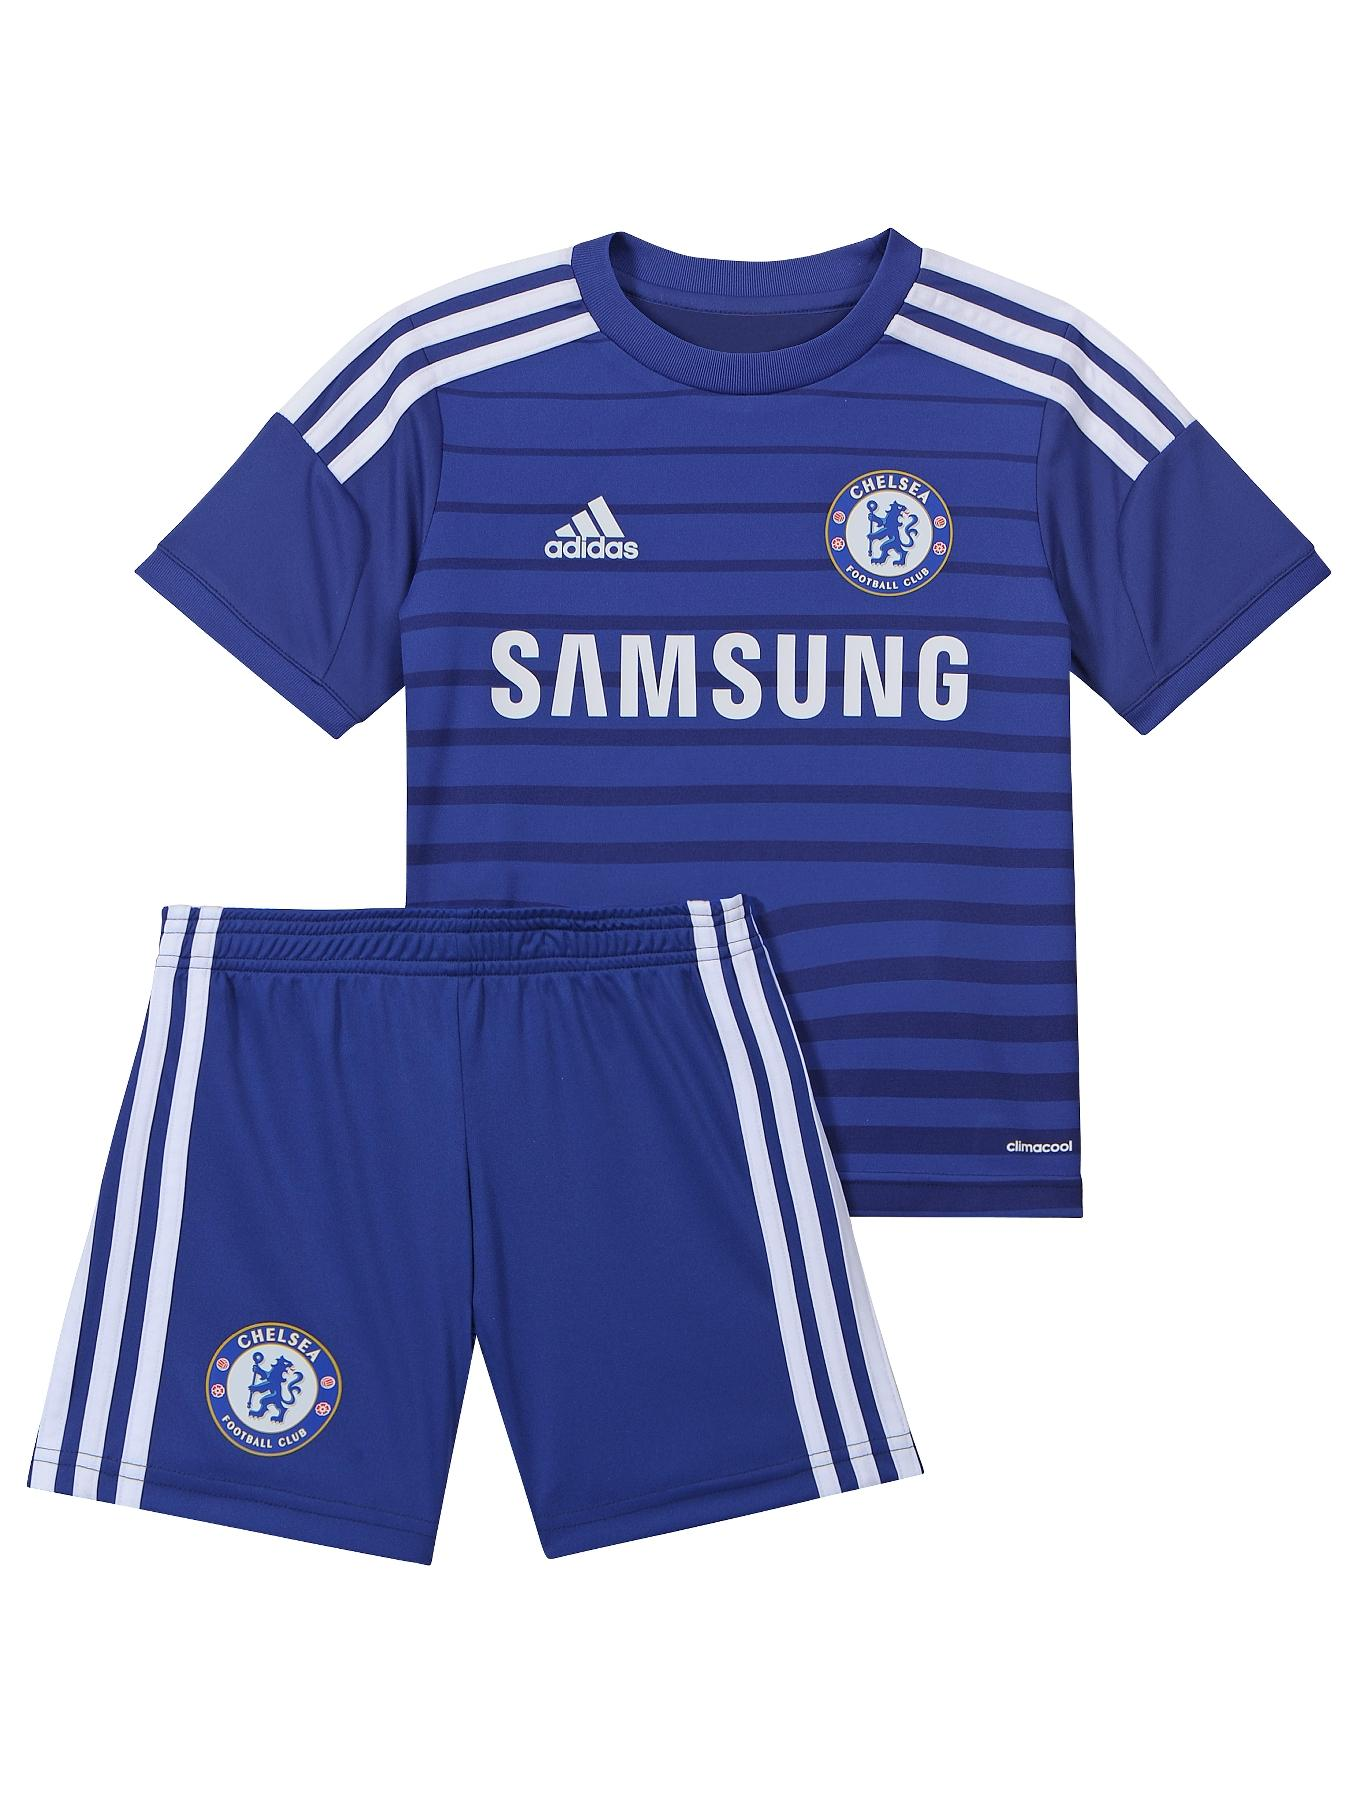 Chelsea 2014/15 Home Mini Kit, Blue